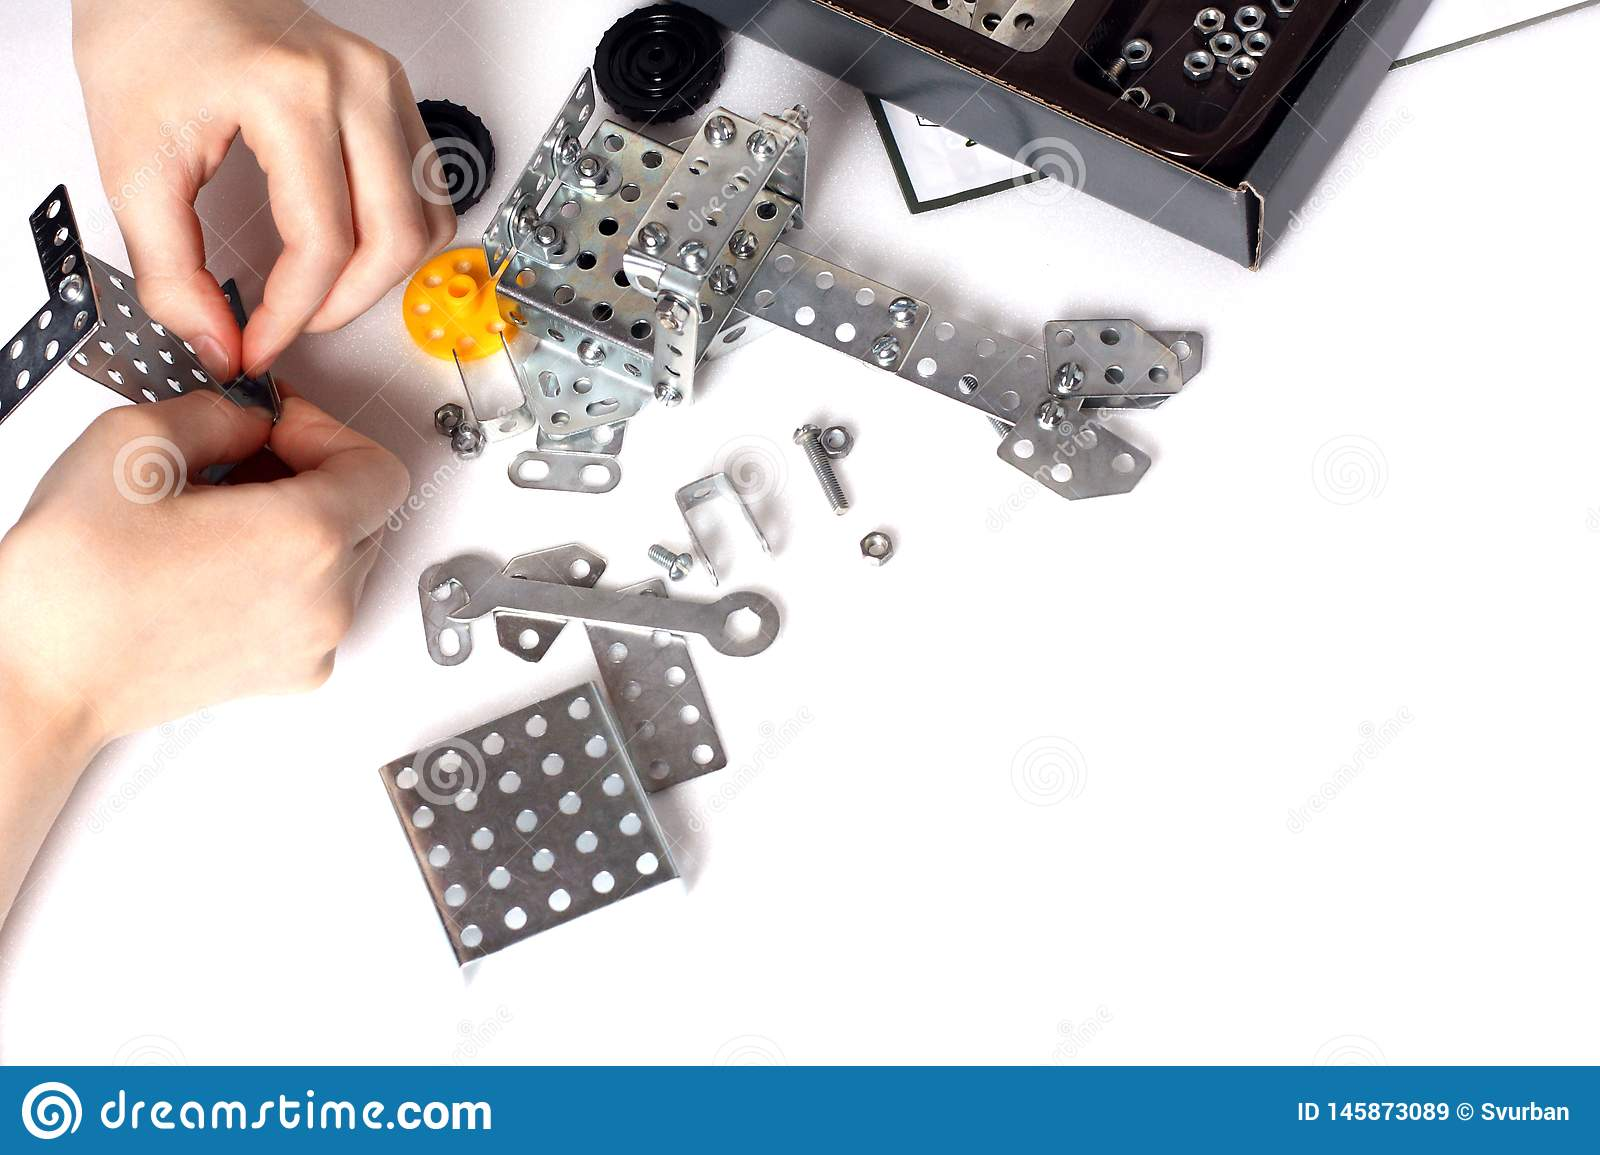 The child collects the metal parts of the child model kit